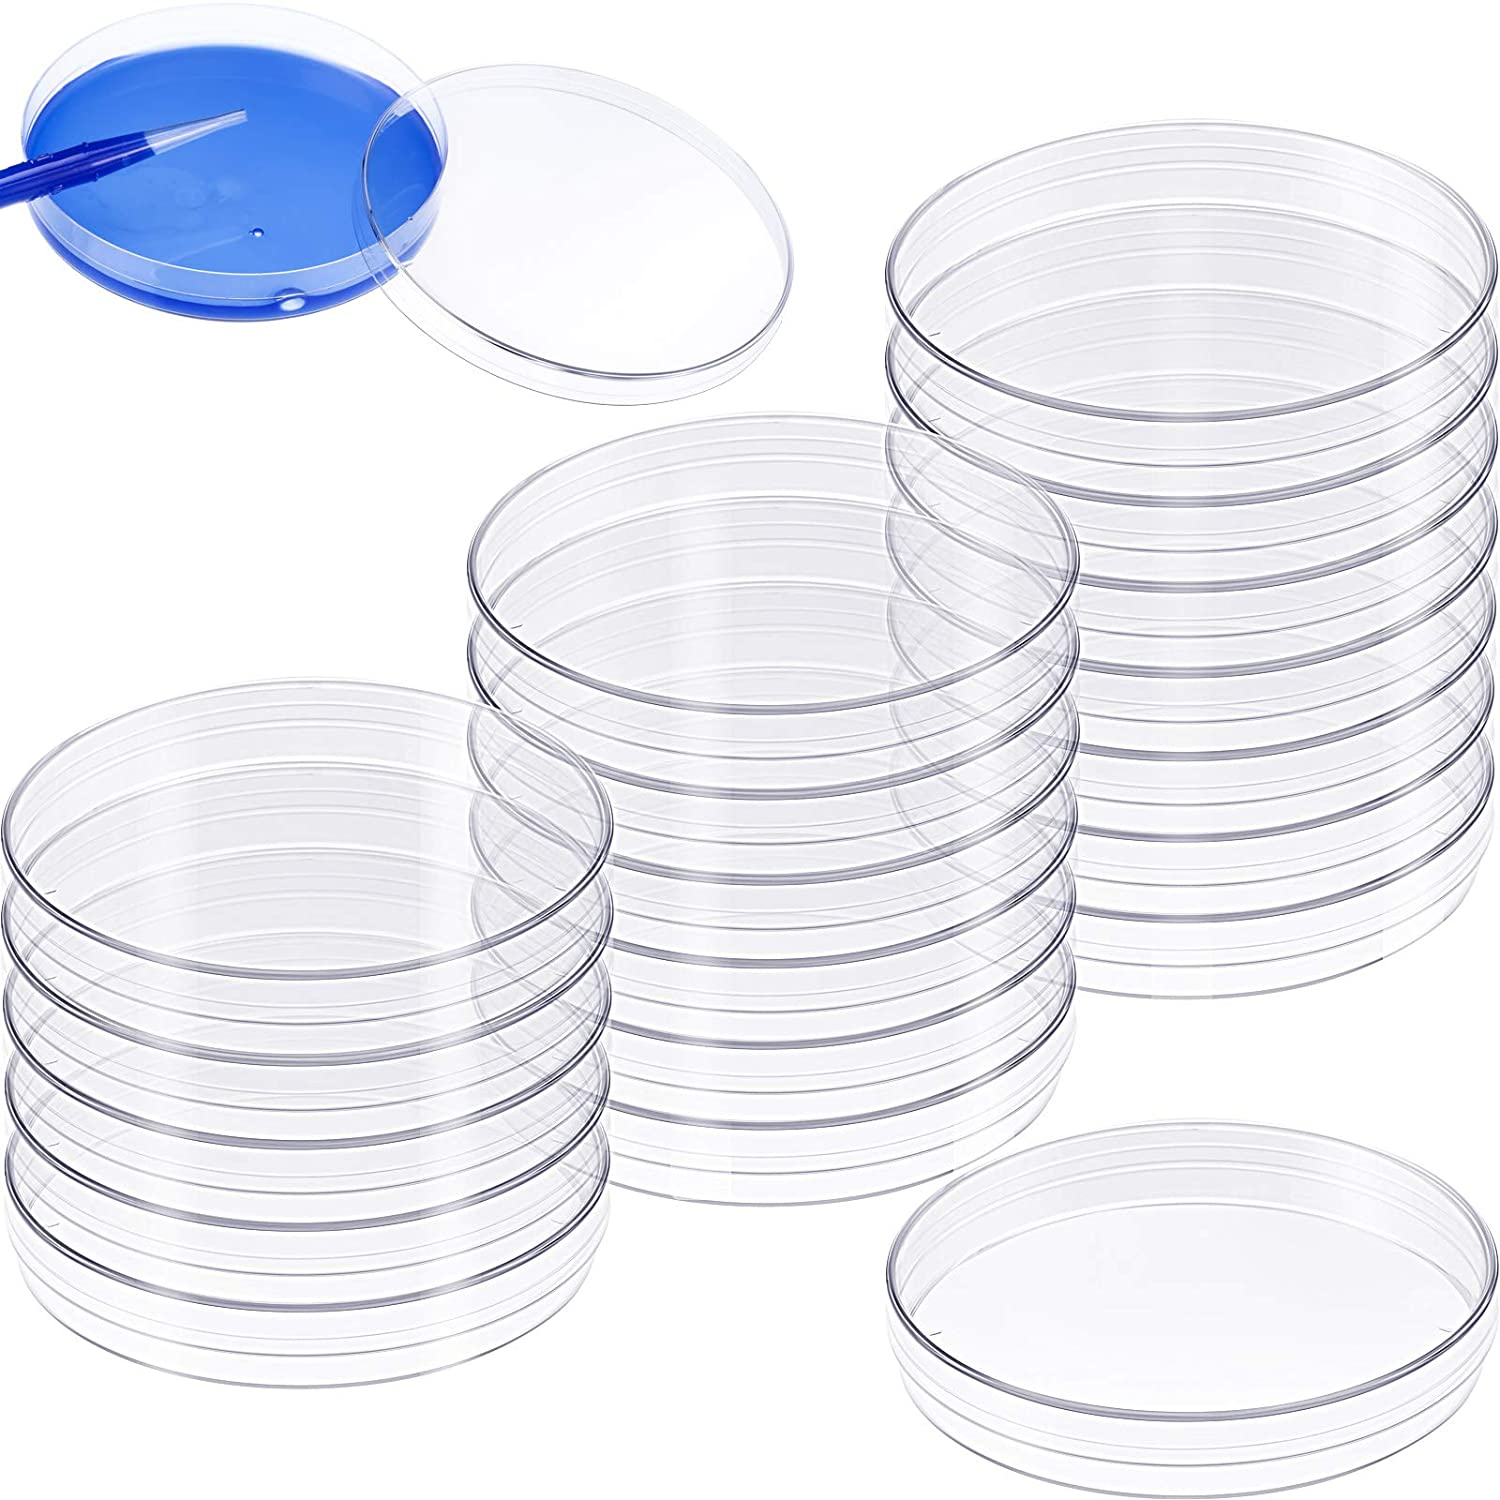 20 Pieces Fashion 90 x 15mm Plastic Clear Lid Projects Dishes Deluxe with Petri